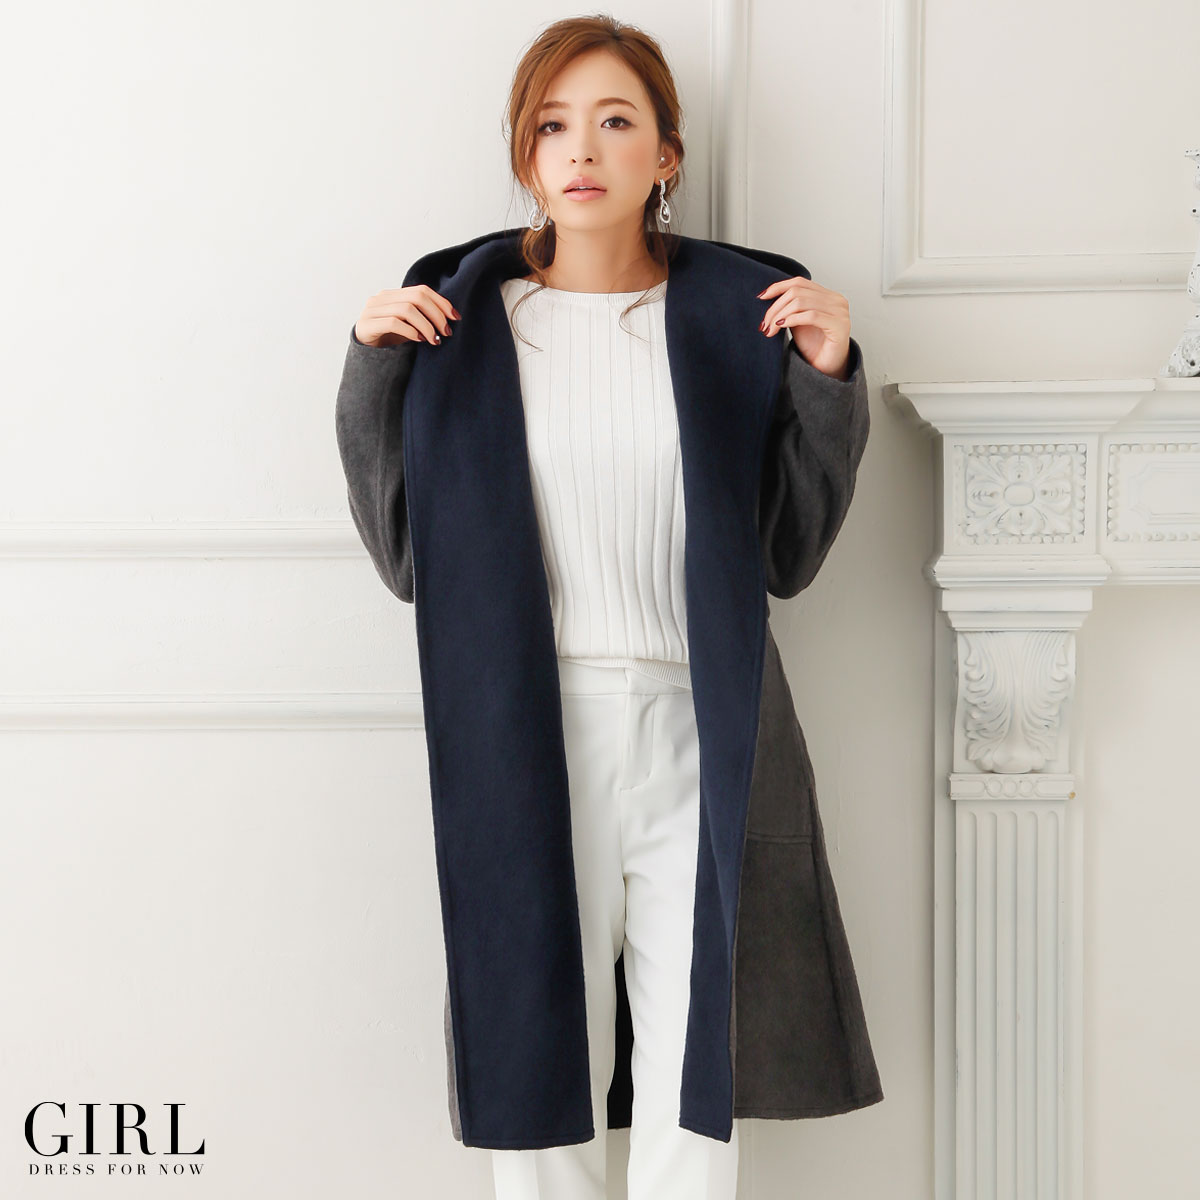 Coat River Court gowns women's coat outerwear winter autumn/winter jacket casual dress one piece beige Navy Black S M L 2 l LL XL wool reversible